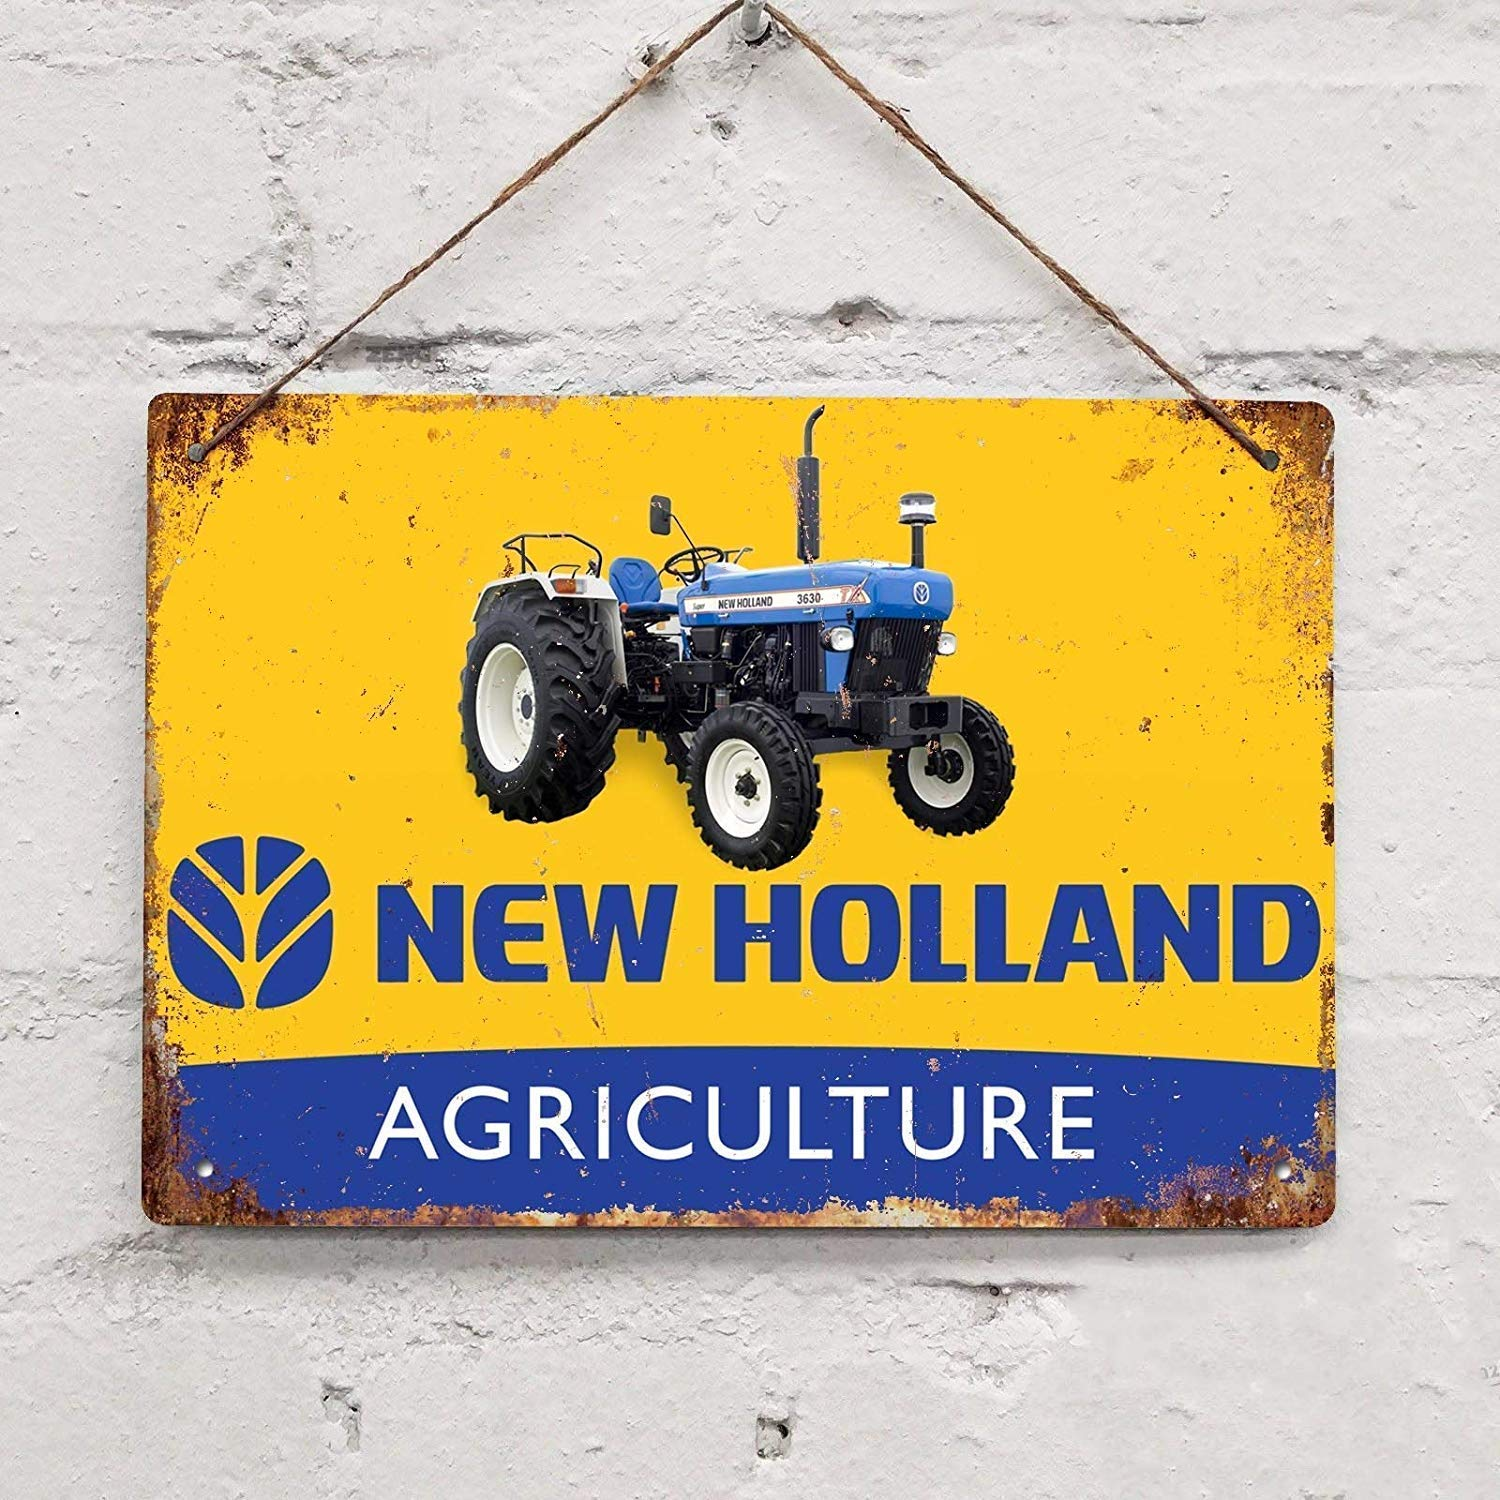 1puppet& New Holland Agriculture Tractor Farm Vintage Tin Sign Metal Decor Metal Sign Wall Metal Tin Sign 8X12 inches Iron Painting